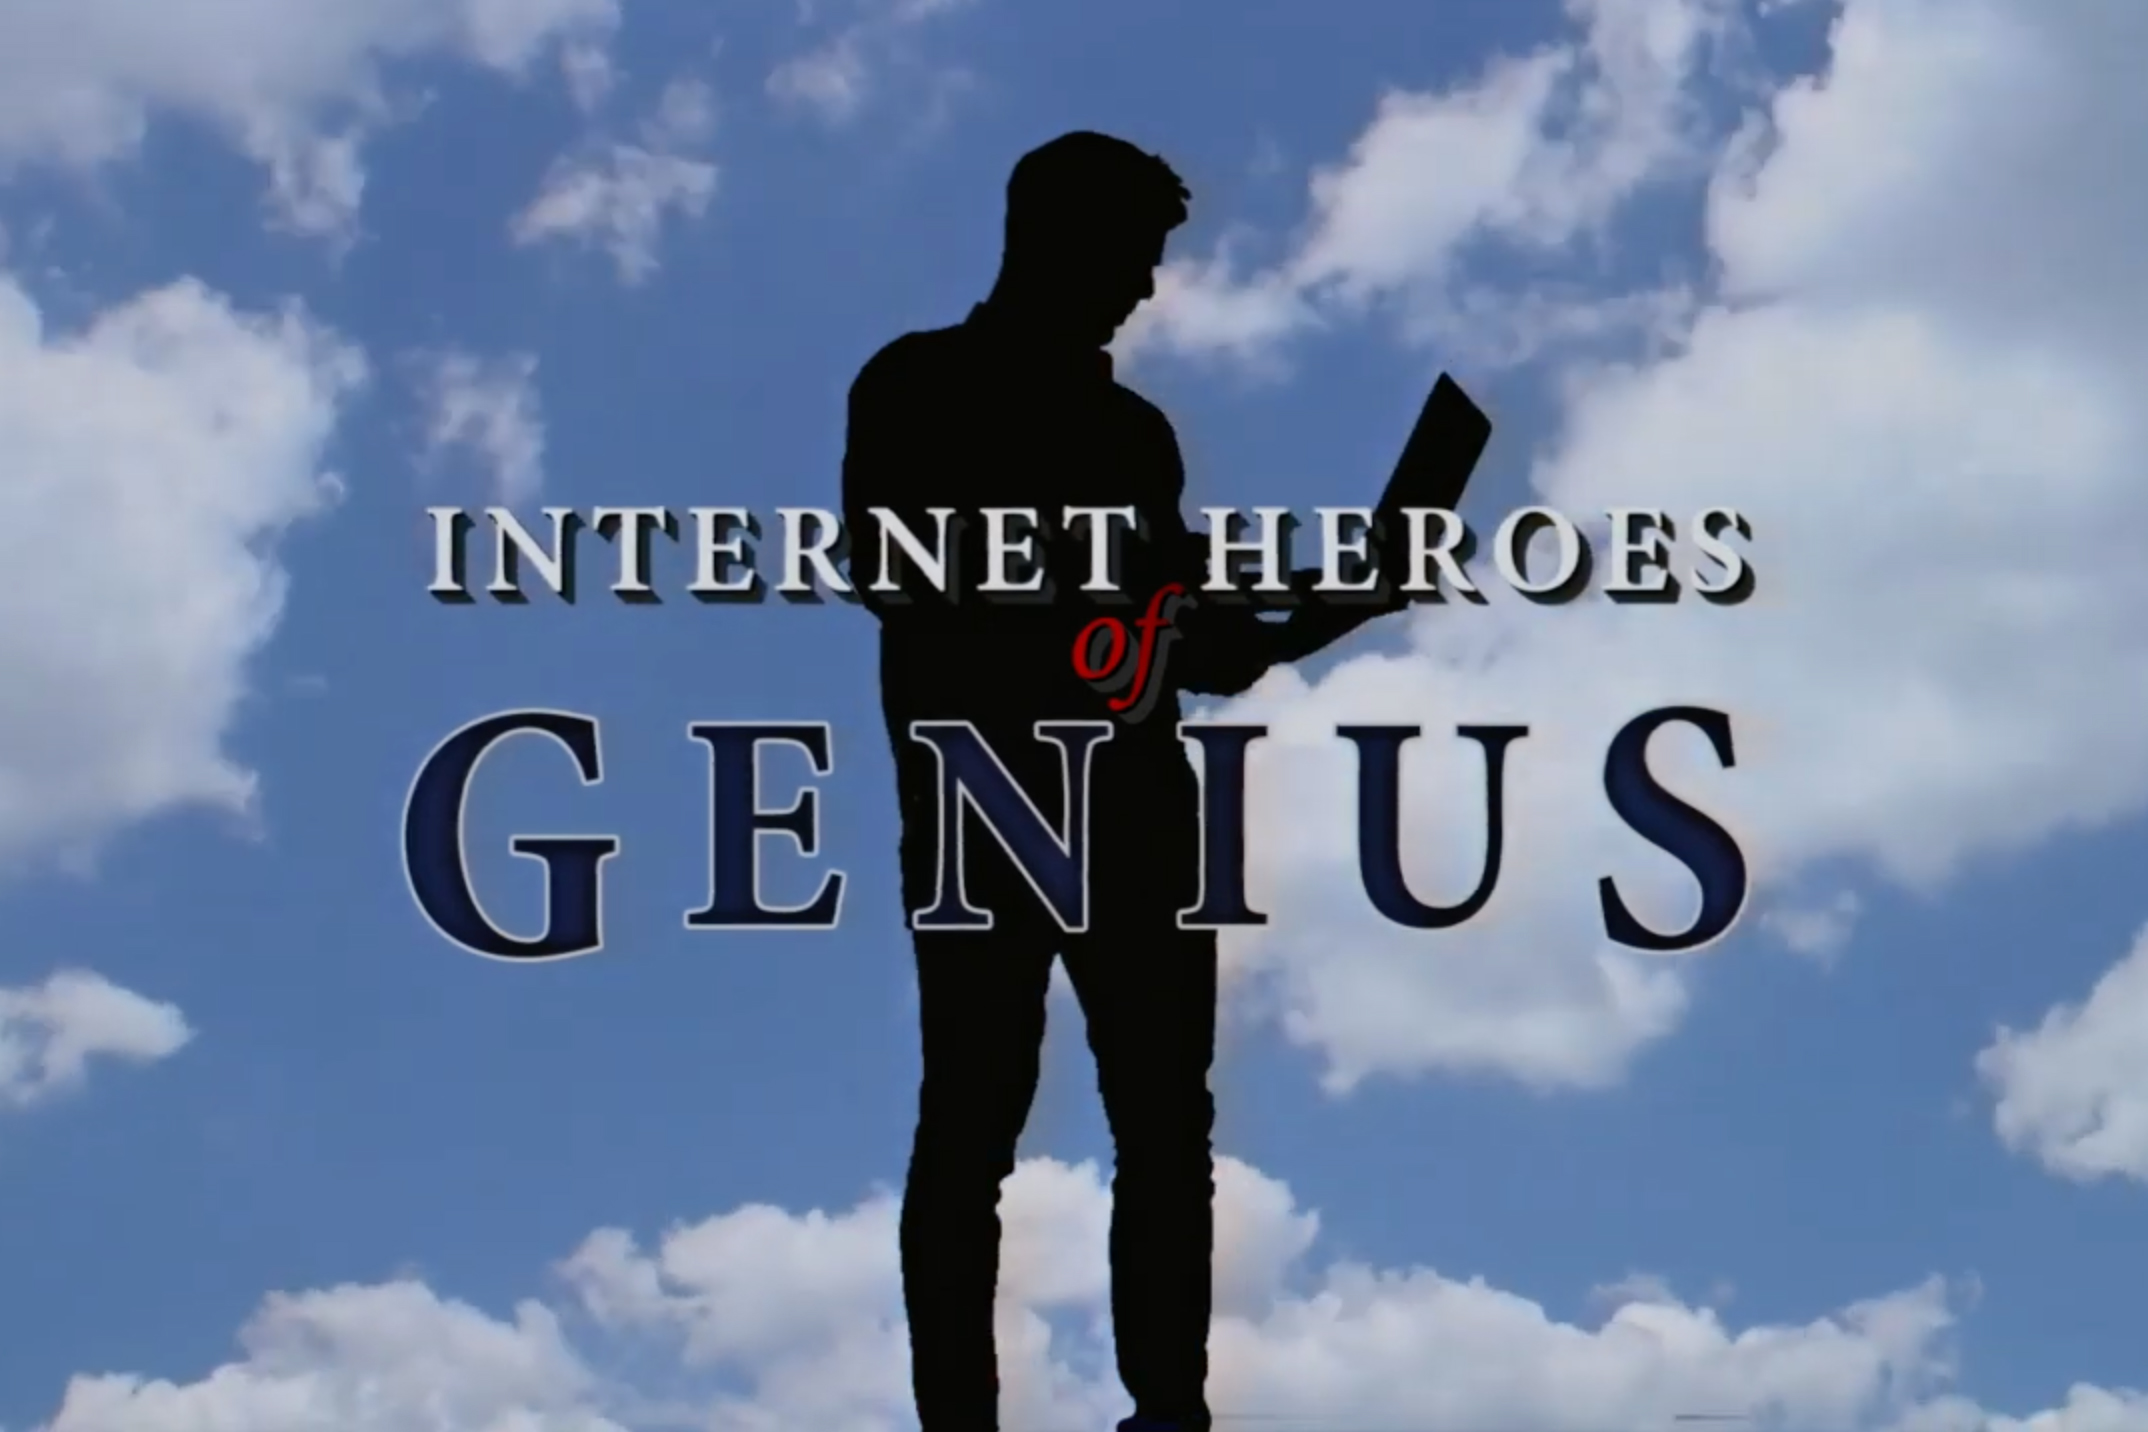 Bud Light brings back its 'Real Men of Genius' campaign but refashions it for the digital age